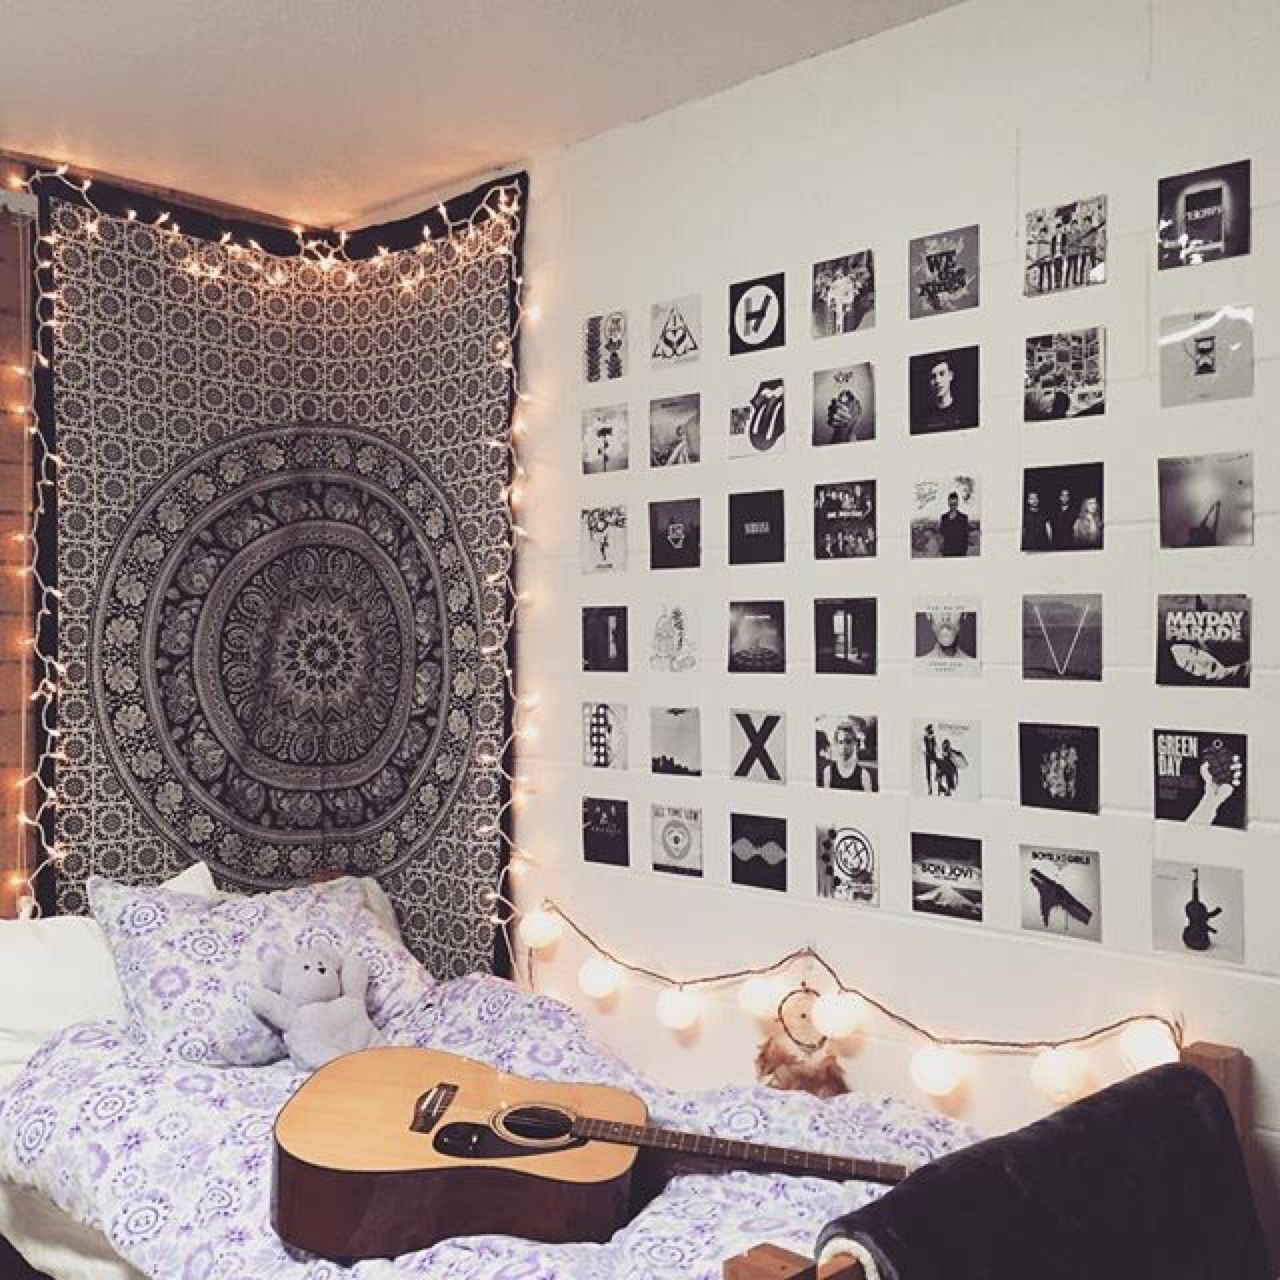 White bedroom designs tumblr - Source Myroomspo Tapestry Bedroom Tumblr Bedroom Decoration Room Decor Diy Room Inspiration Poster Lights Fairy Lights